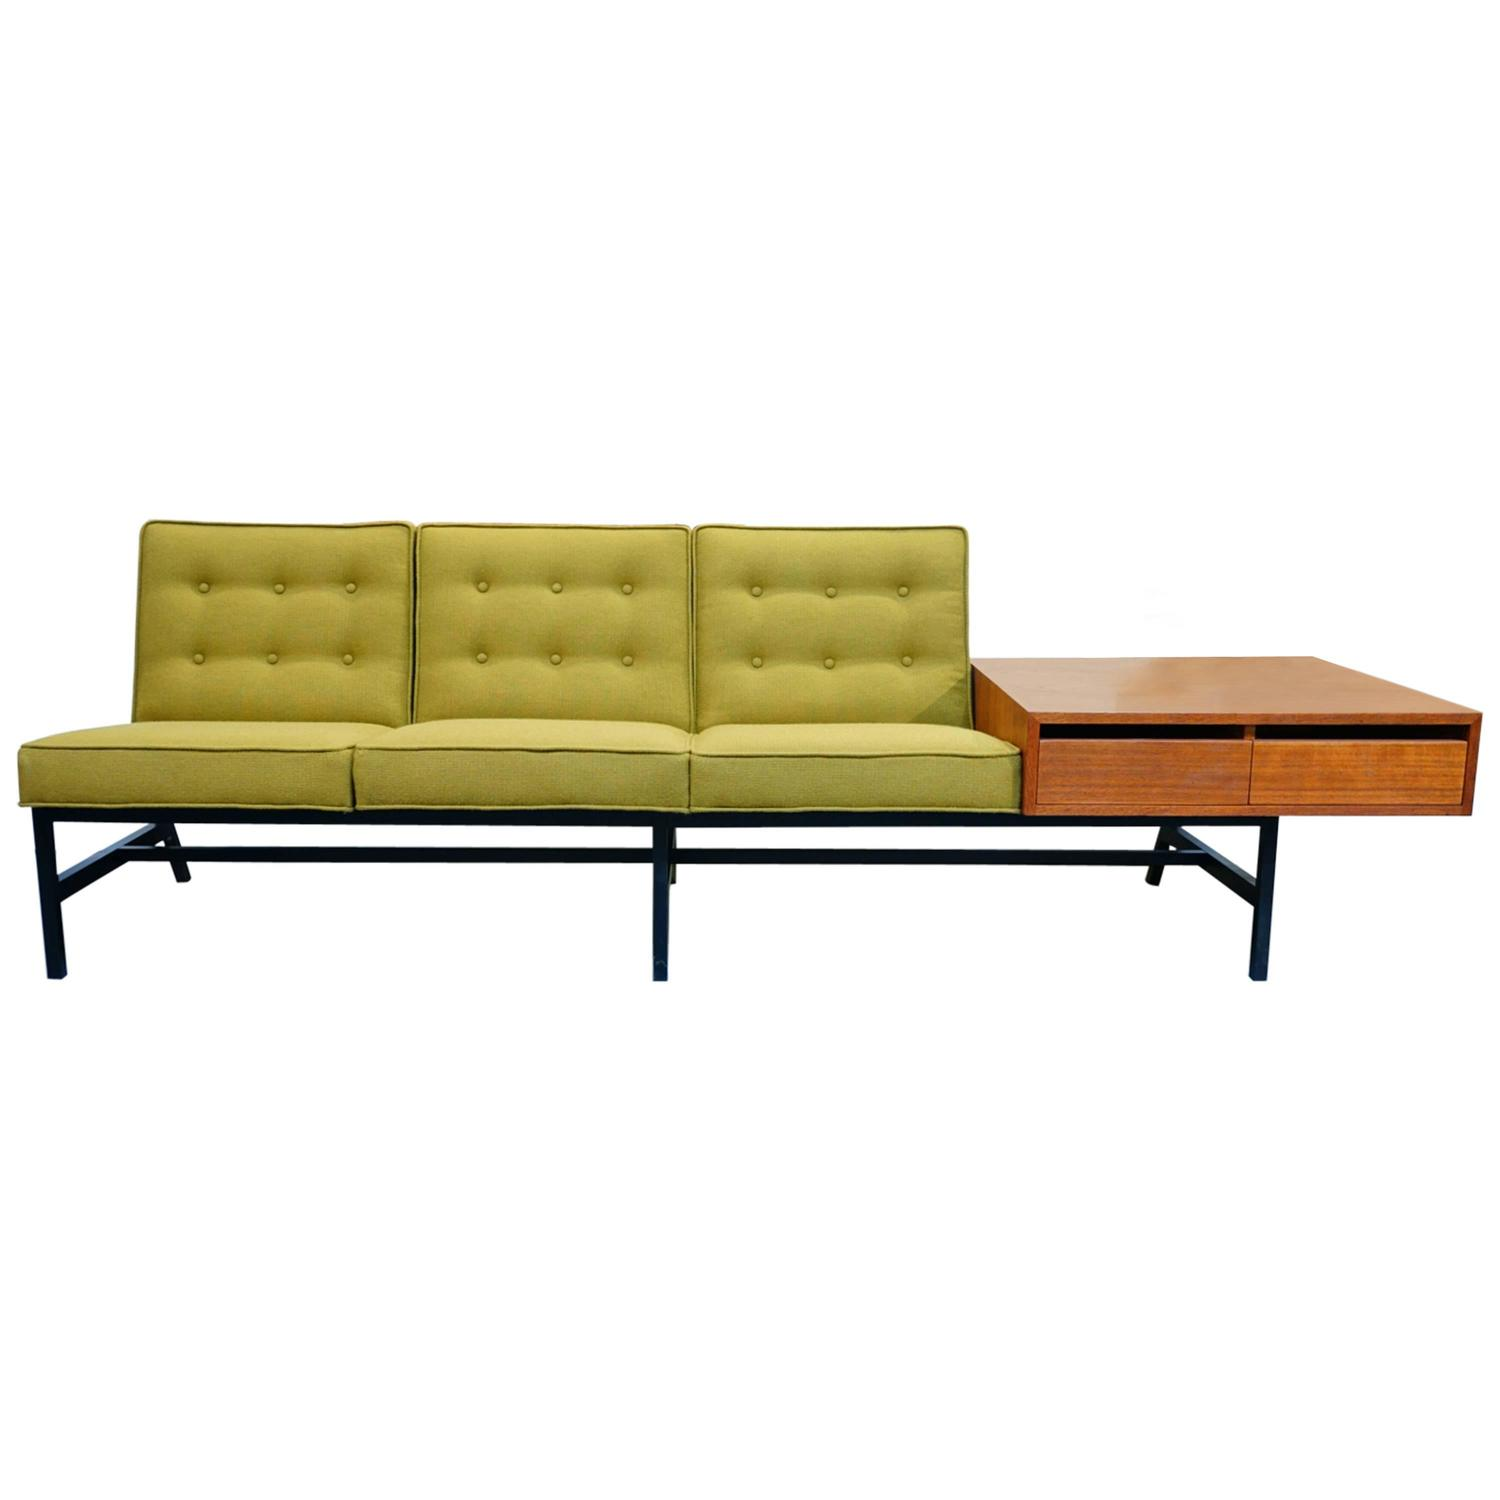 knoll sofa with new maharam upholstery and teak cabinet at 1stdibs. Black Bedroom Furniture Sets. Home Design Ideas